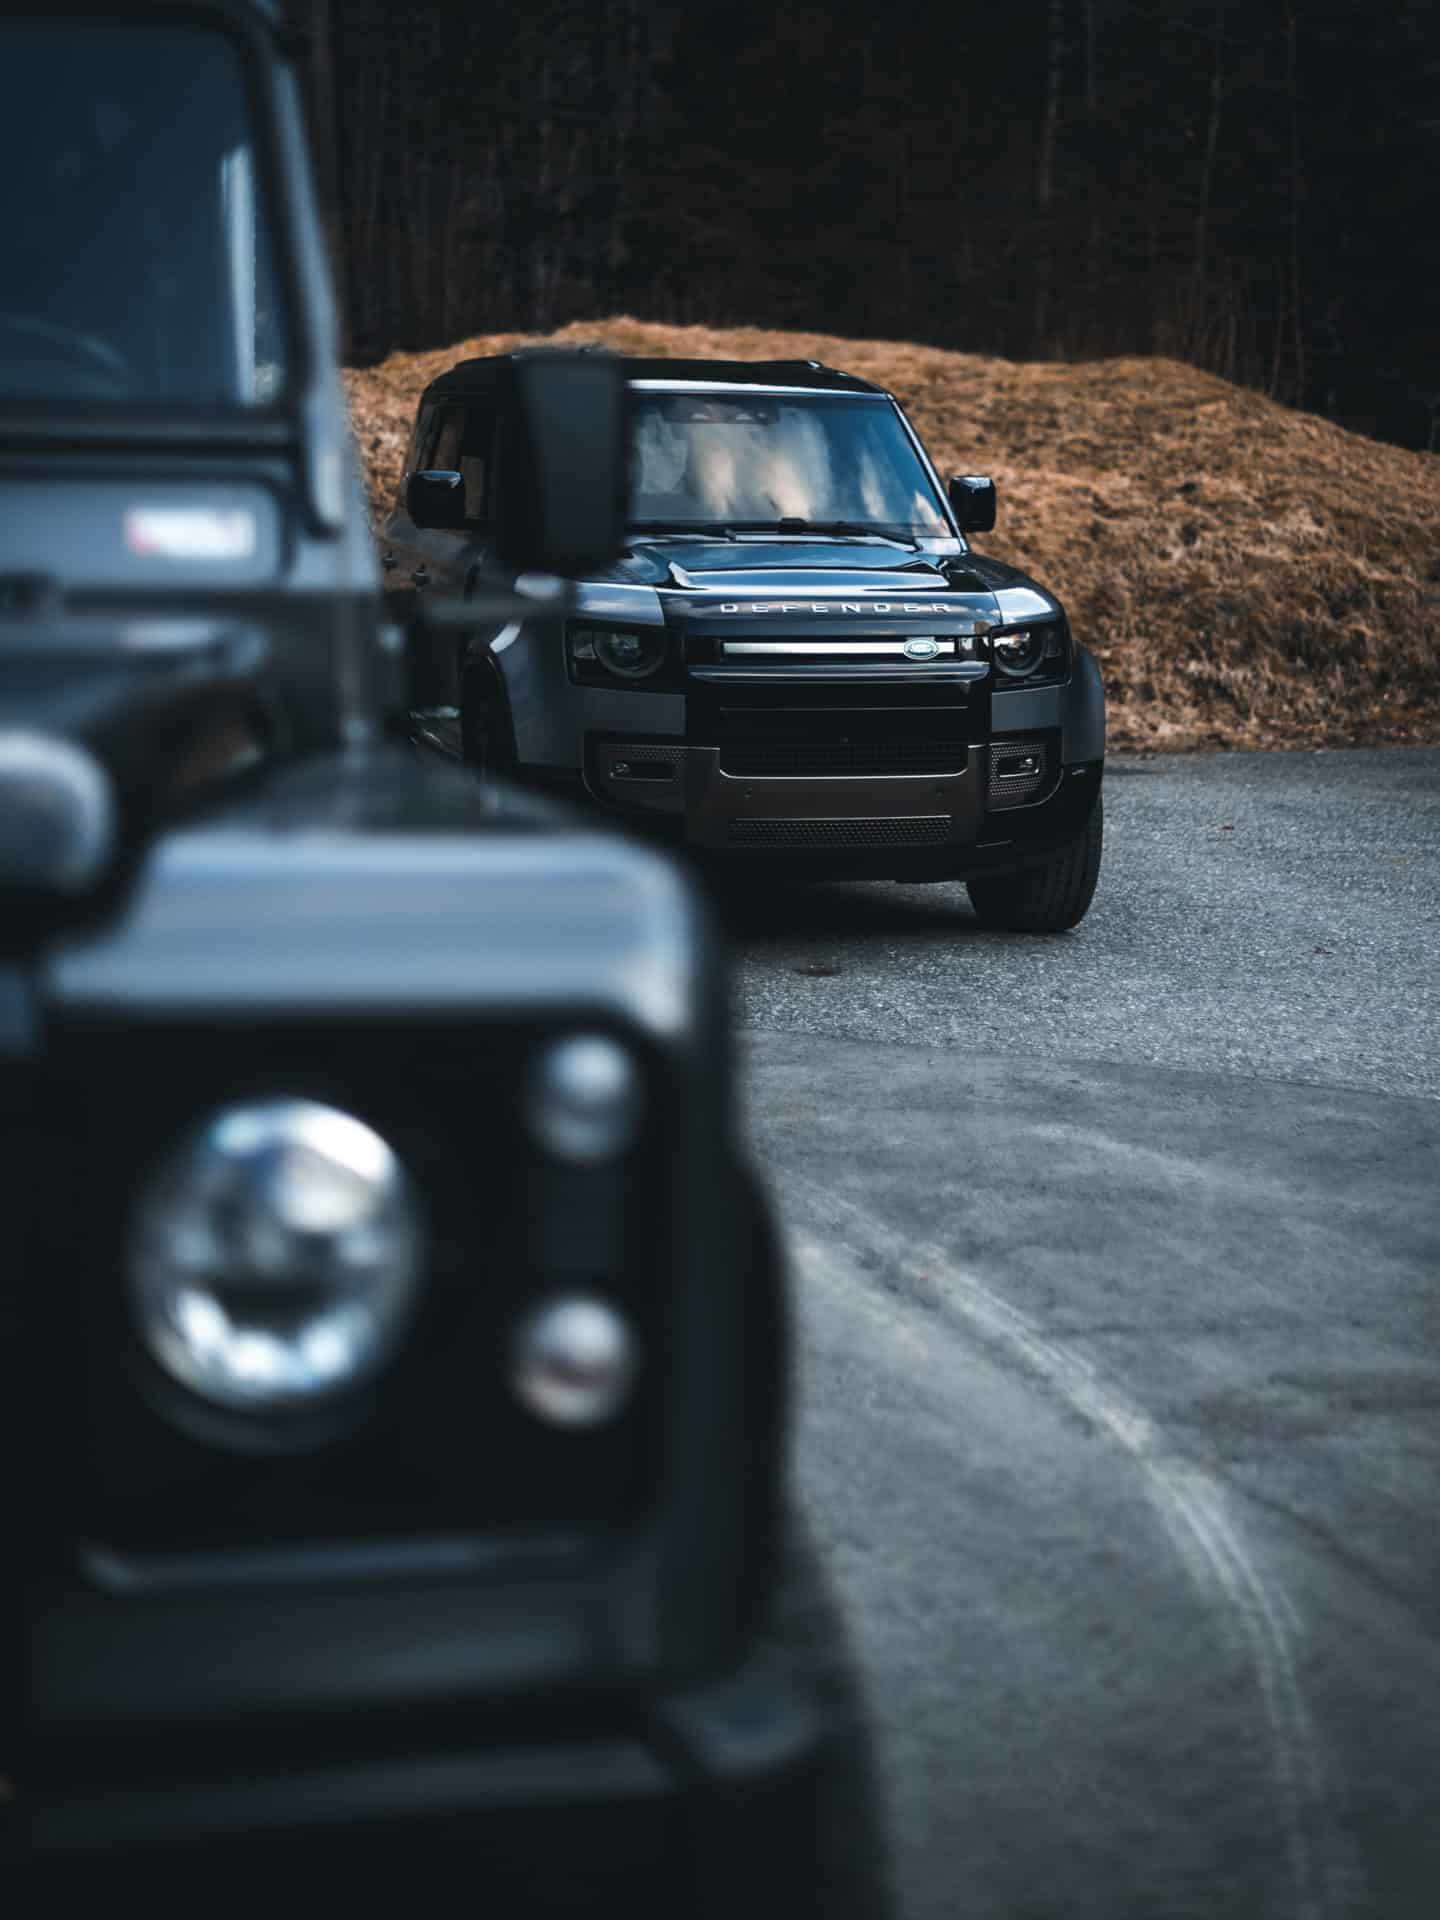 Land Rover Defender 2020 x Niels Oberson (2)